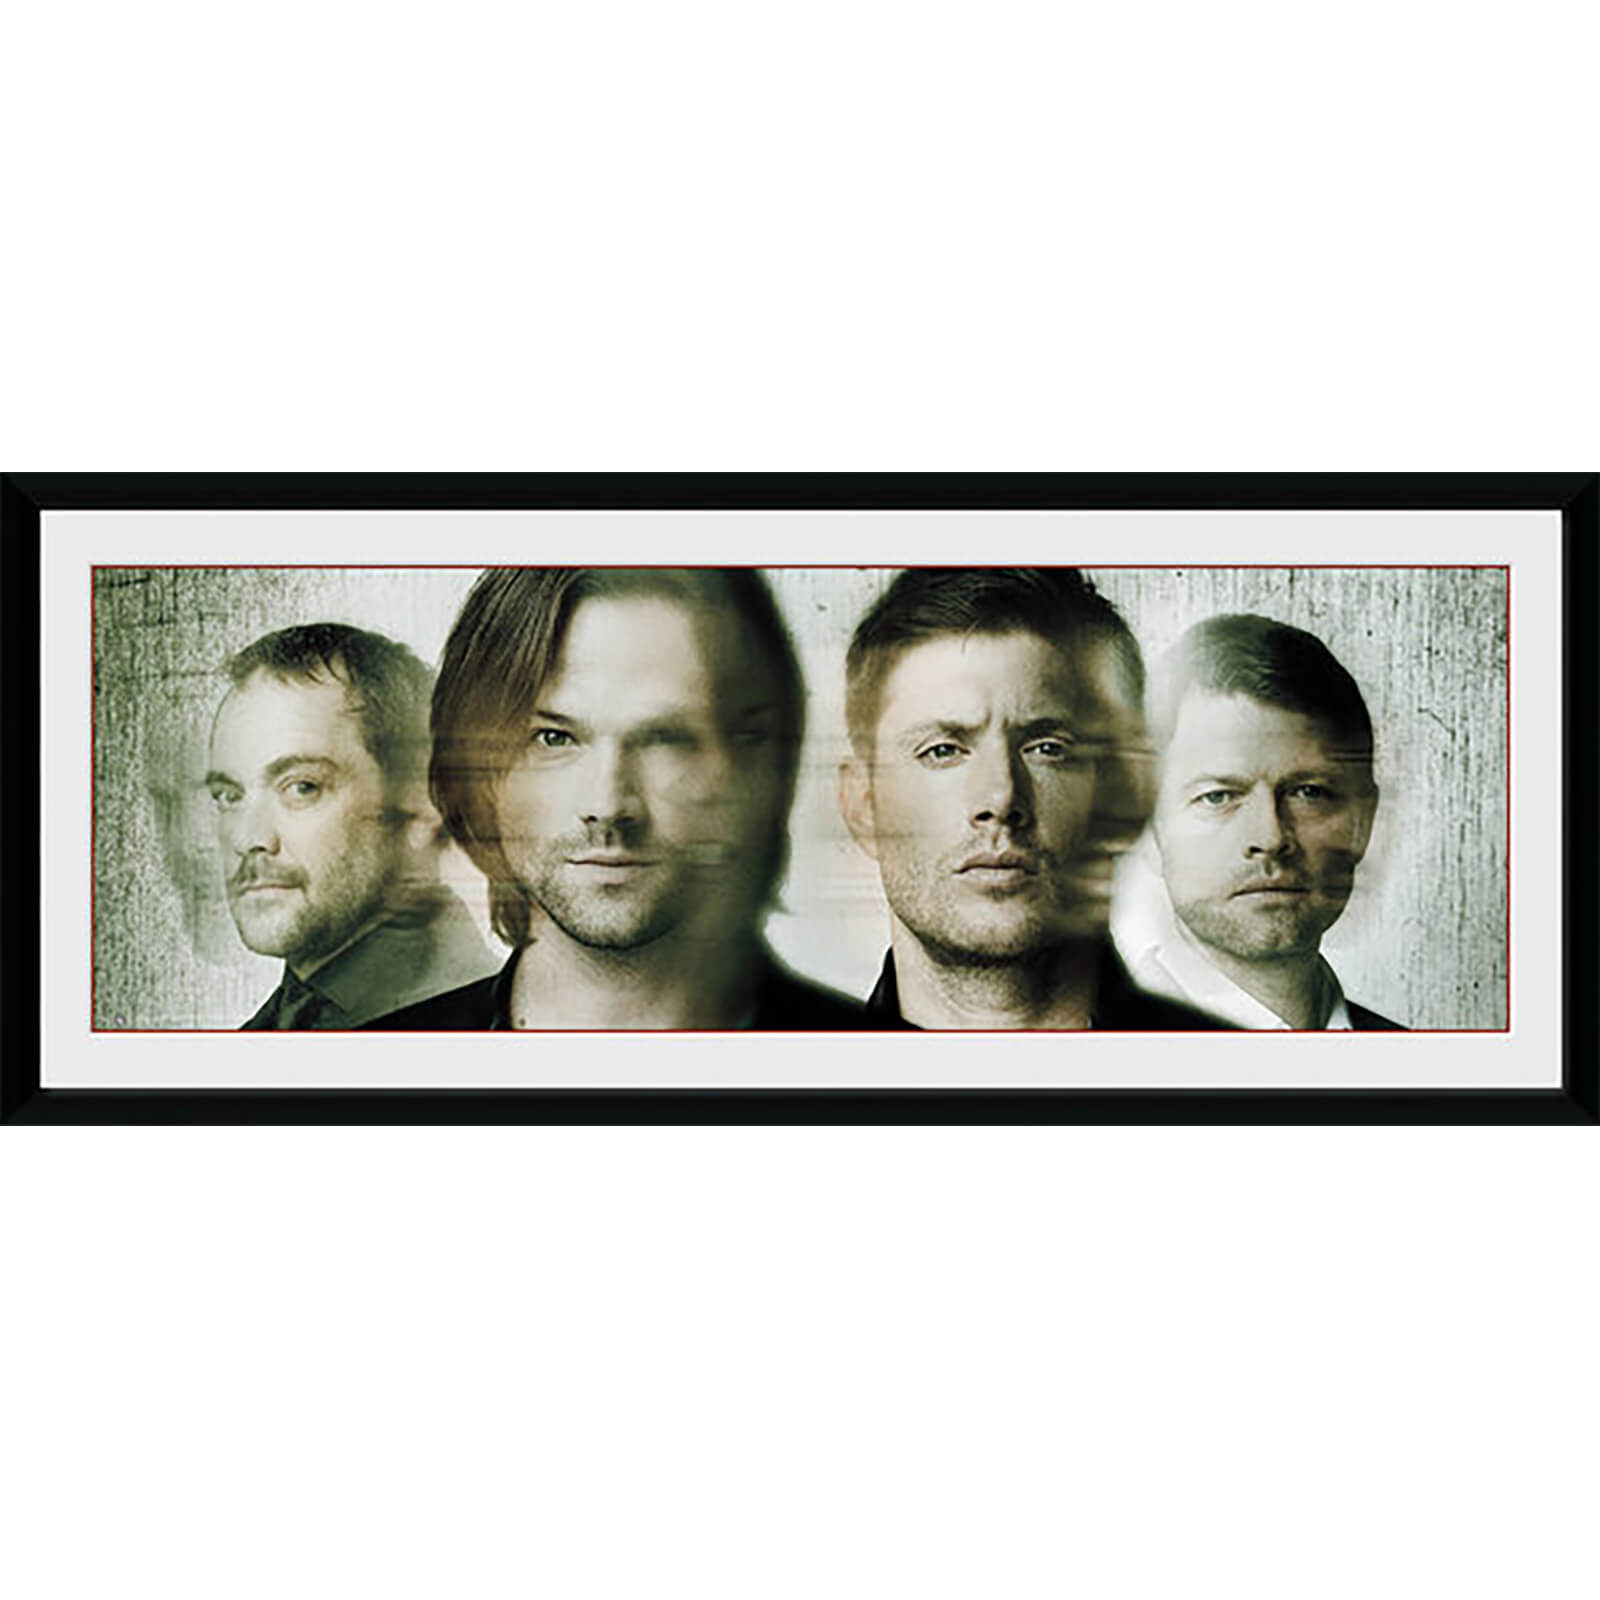 Supernatural Group - 30 x 12 Inches Framed Photograph